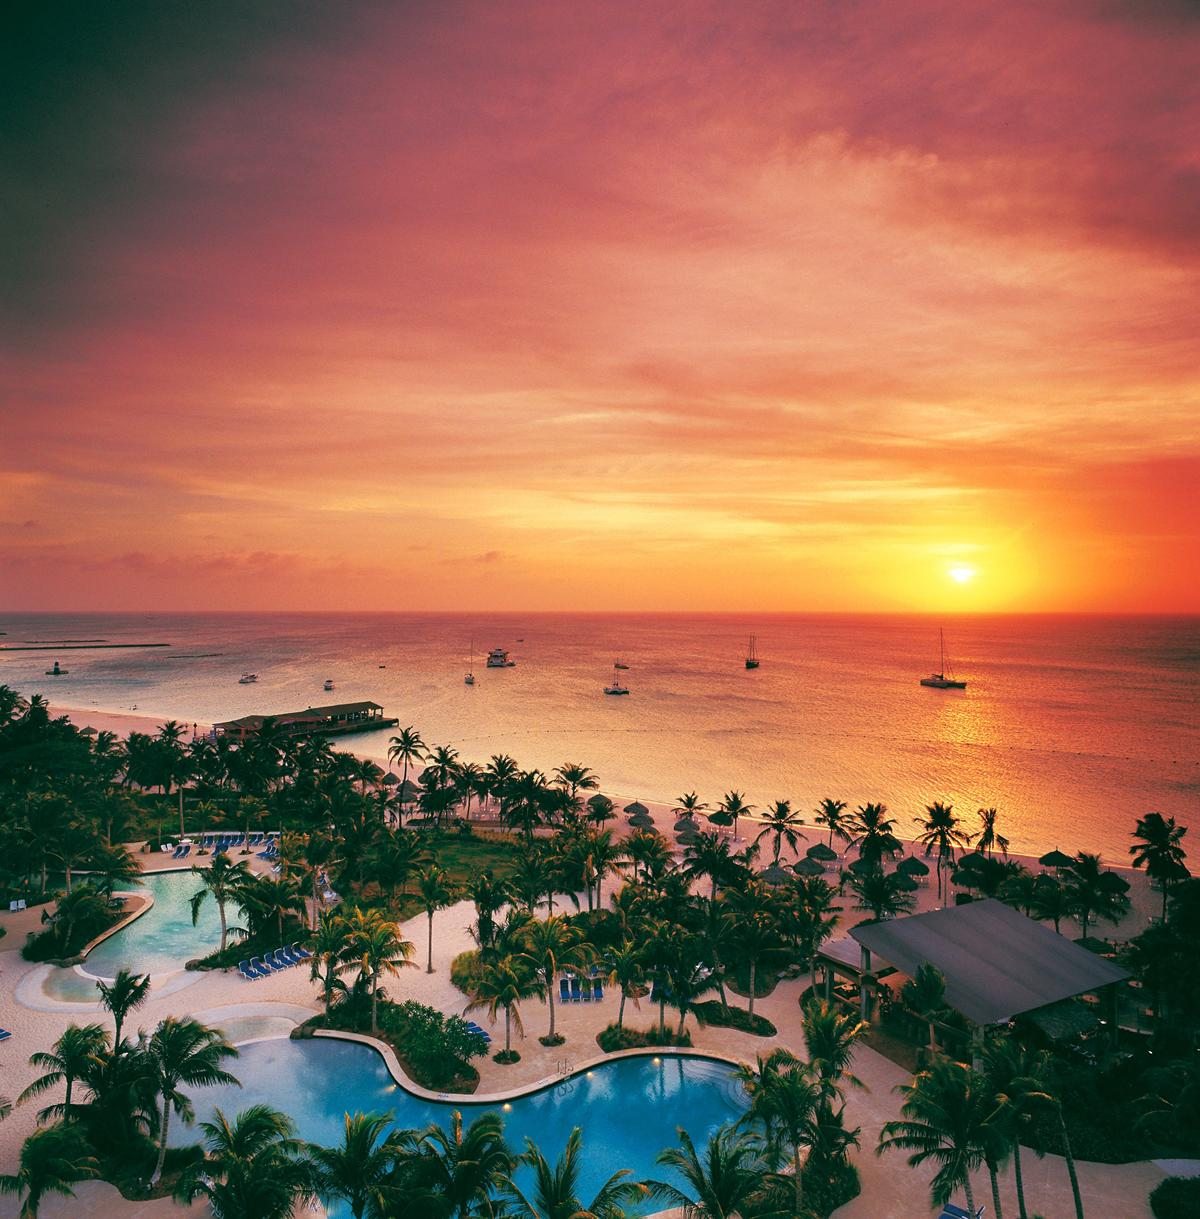 Hilton opens oceanfront resort and spa in Aruba, Caribbean